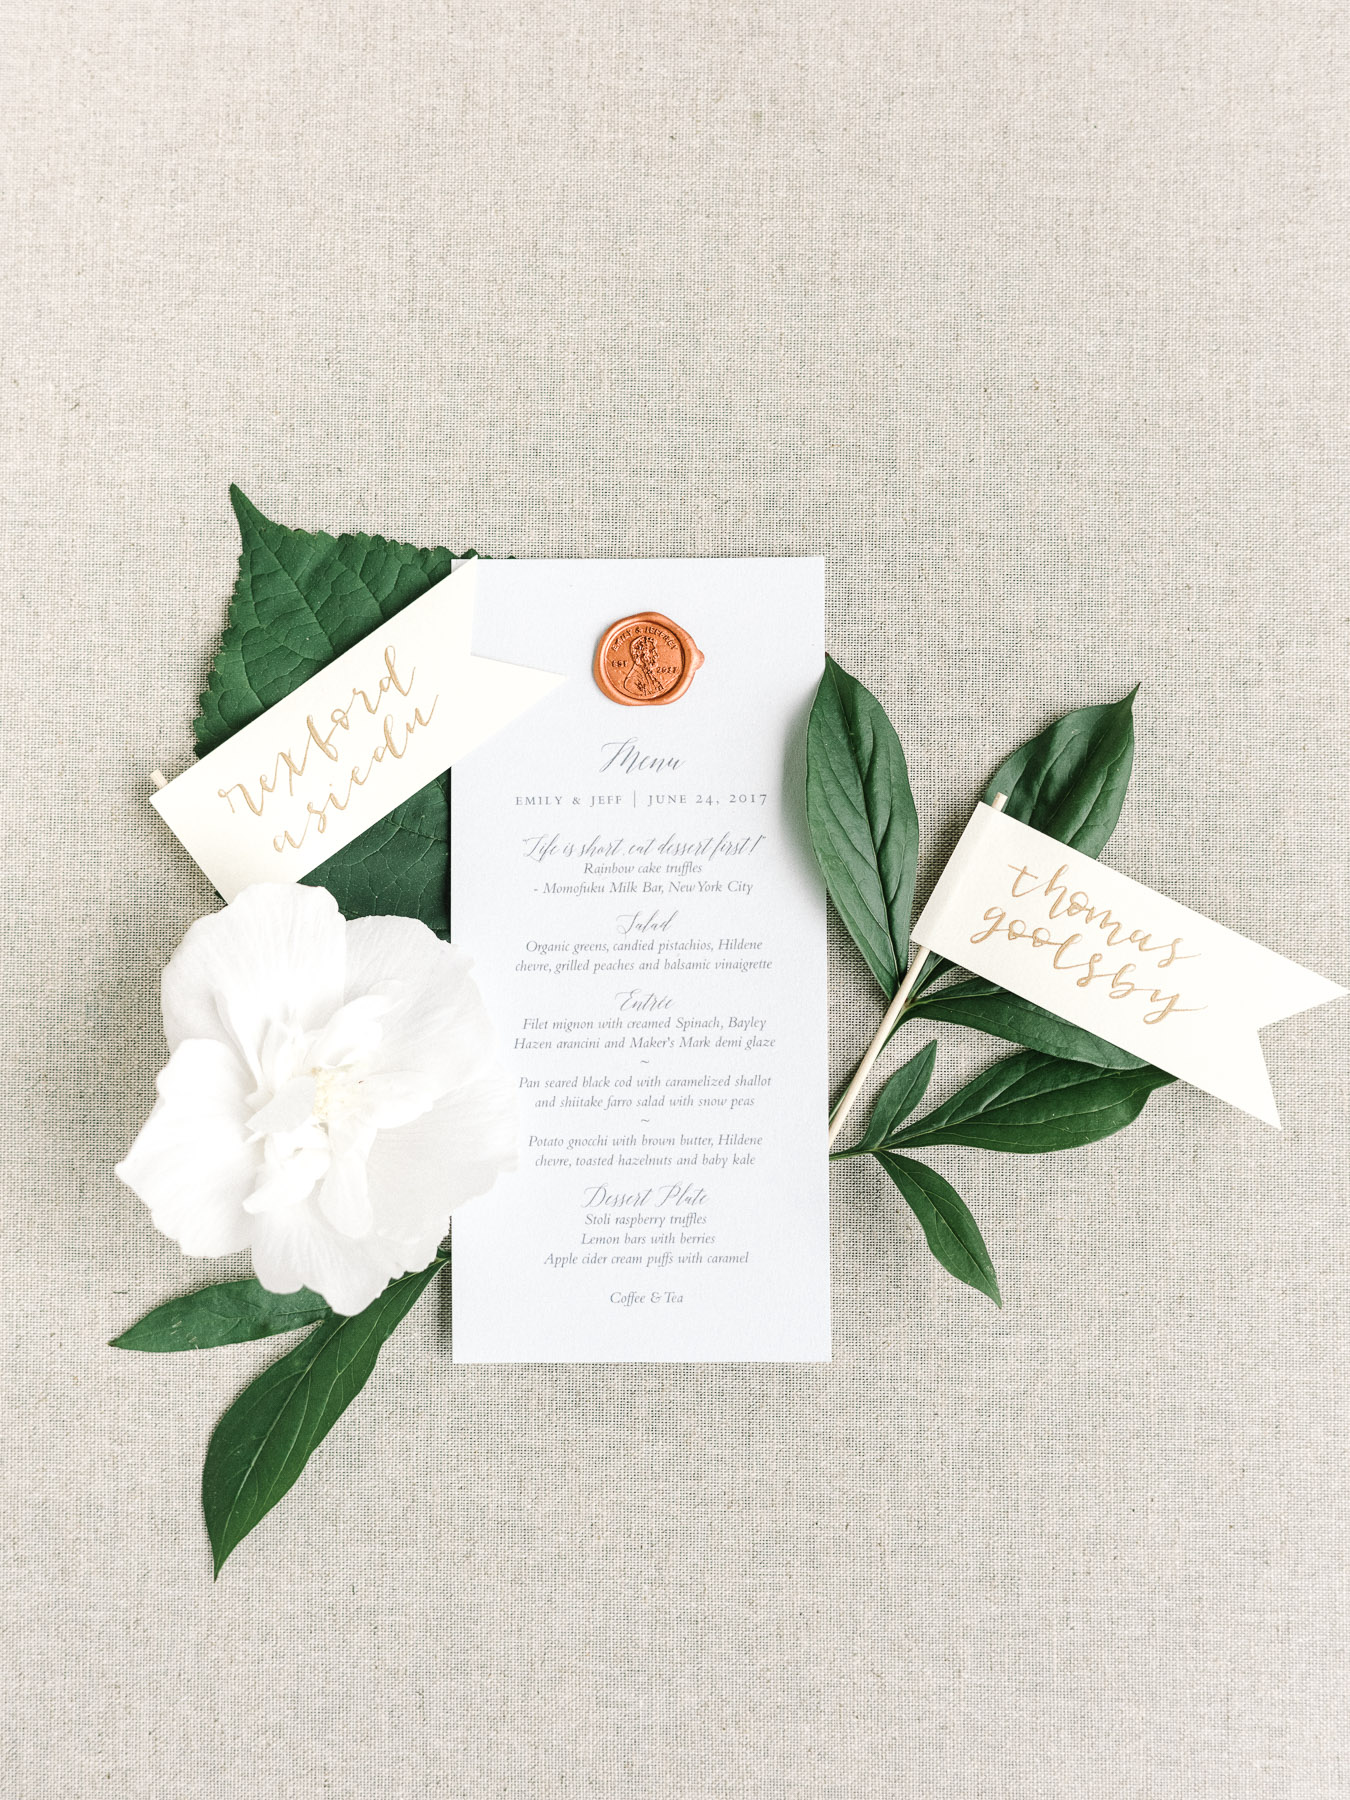 Manchester Vermont Wedding Tie That Binds Menu with Penny